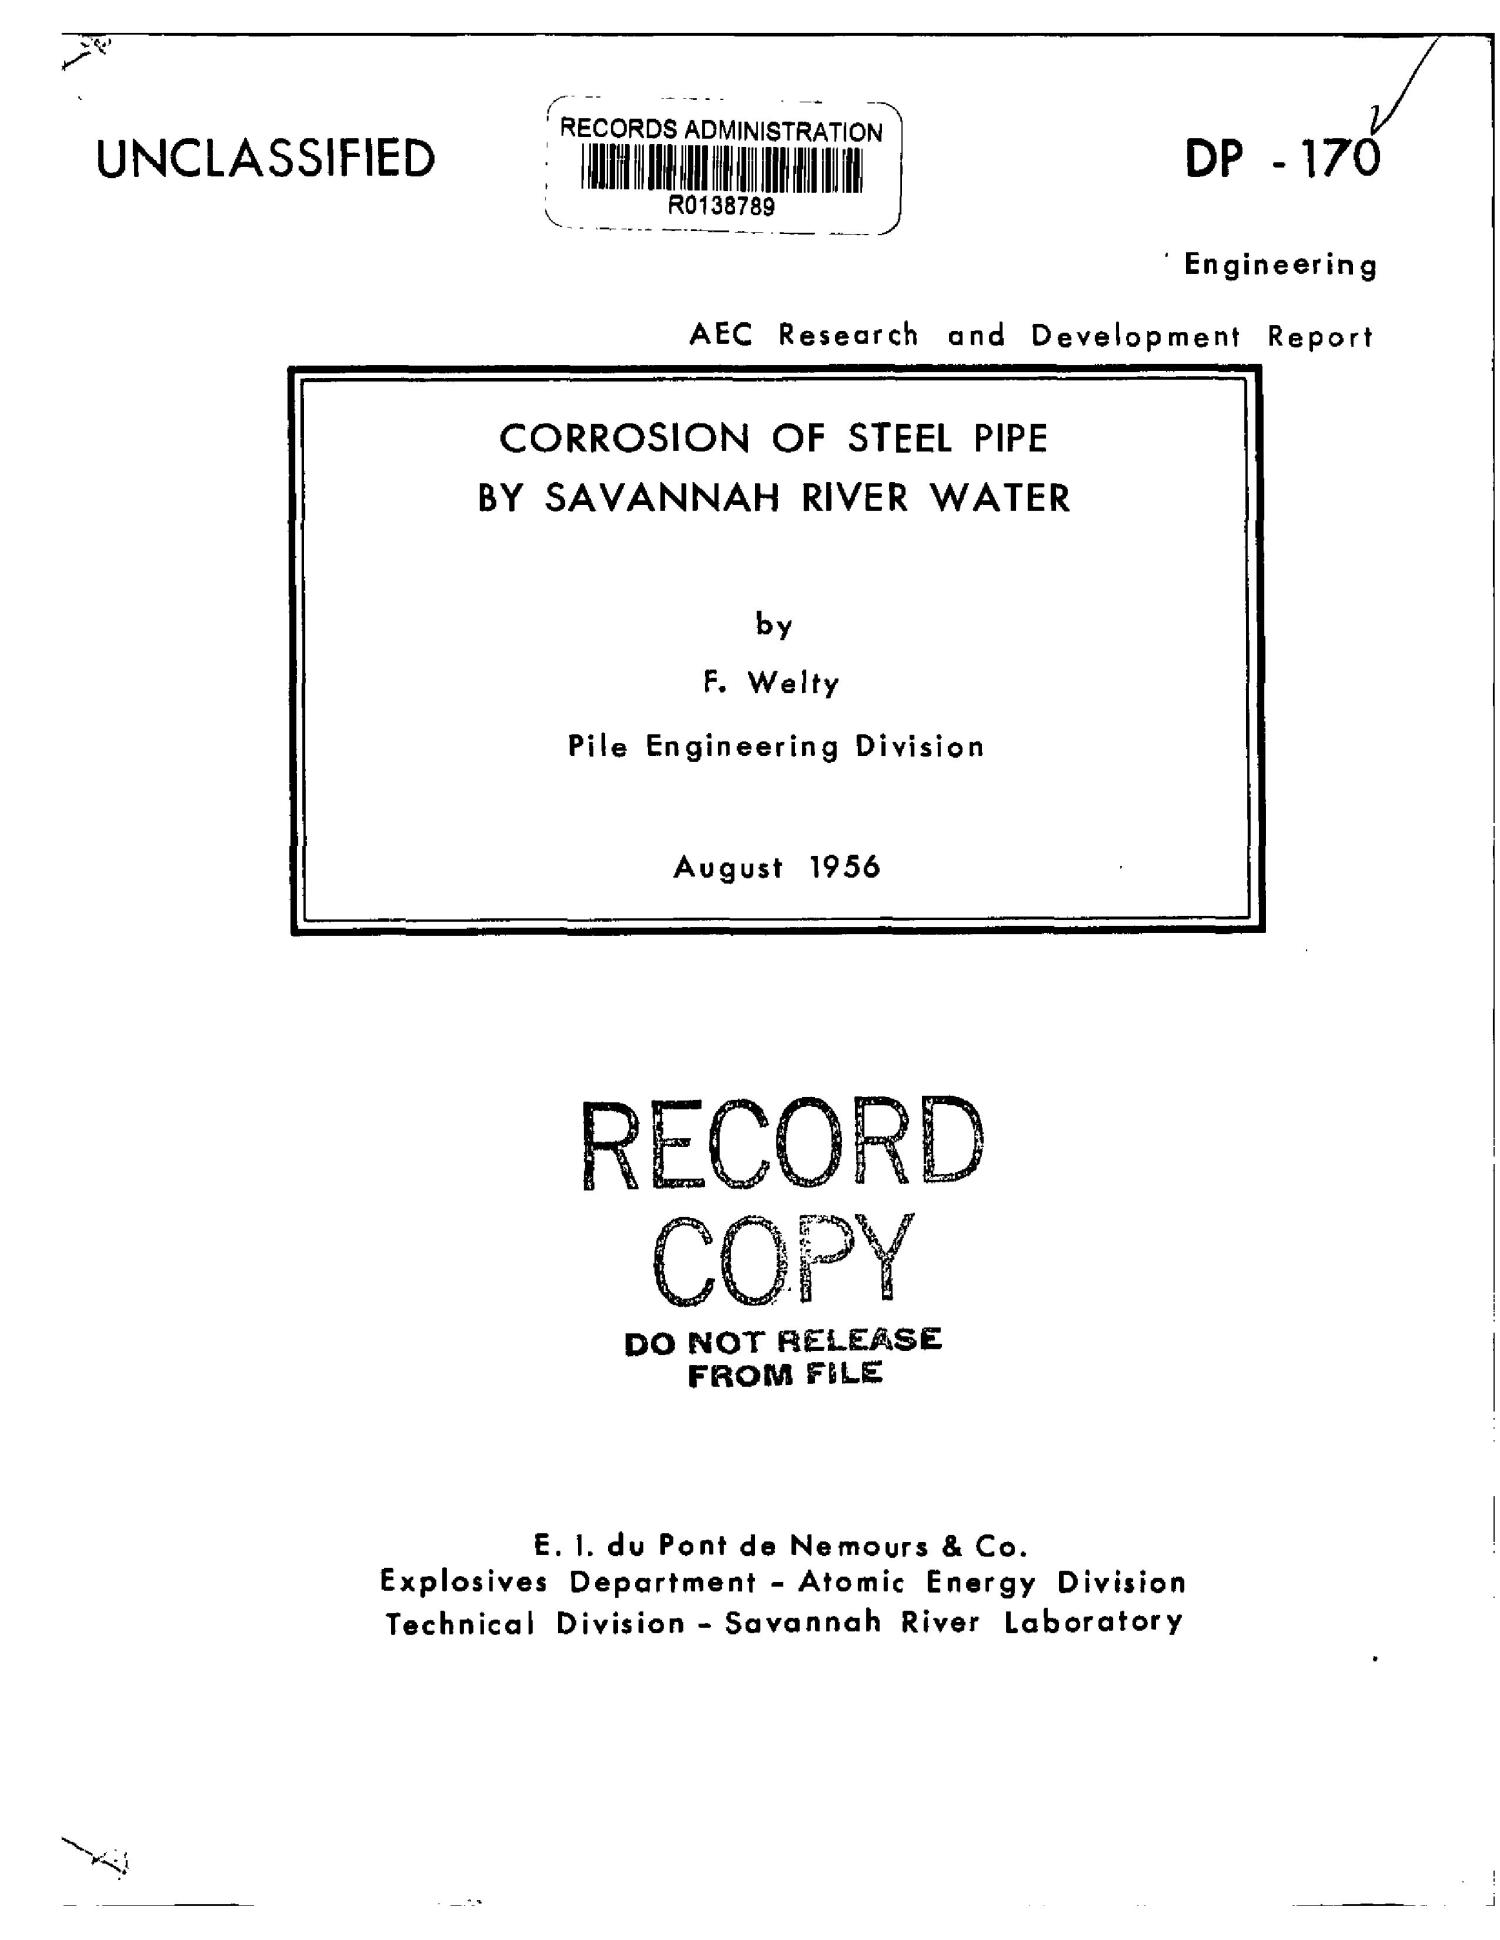 CORROSION OF STEEL PIPE BY SAVANNAH RIVER WATER                                                                                                      [Sequence #]: 1 of 17